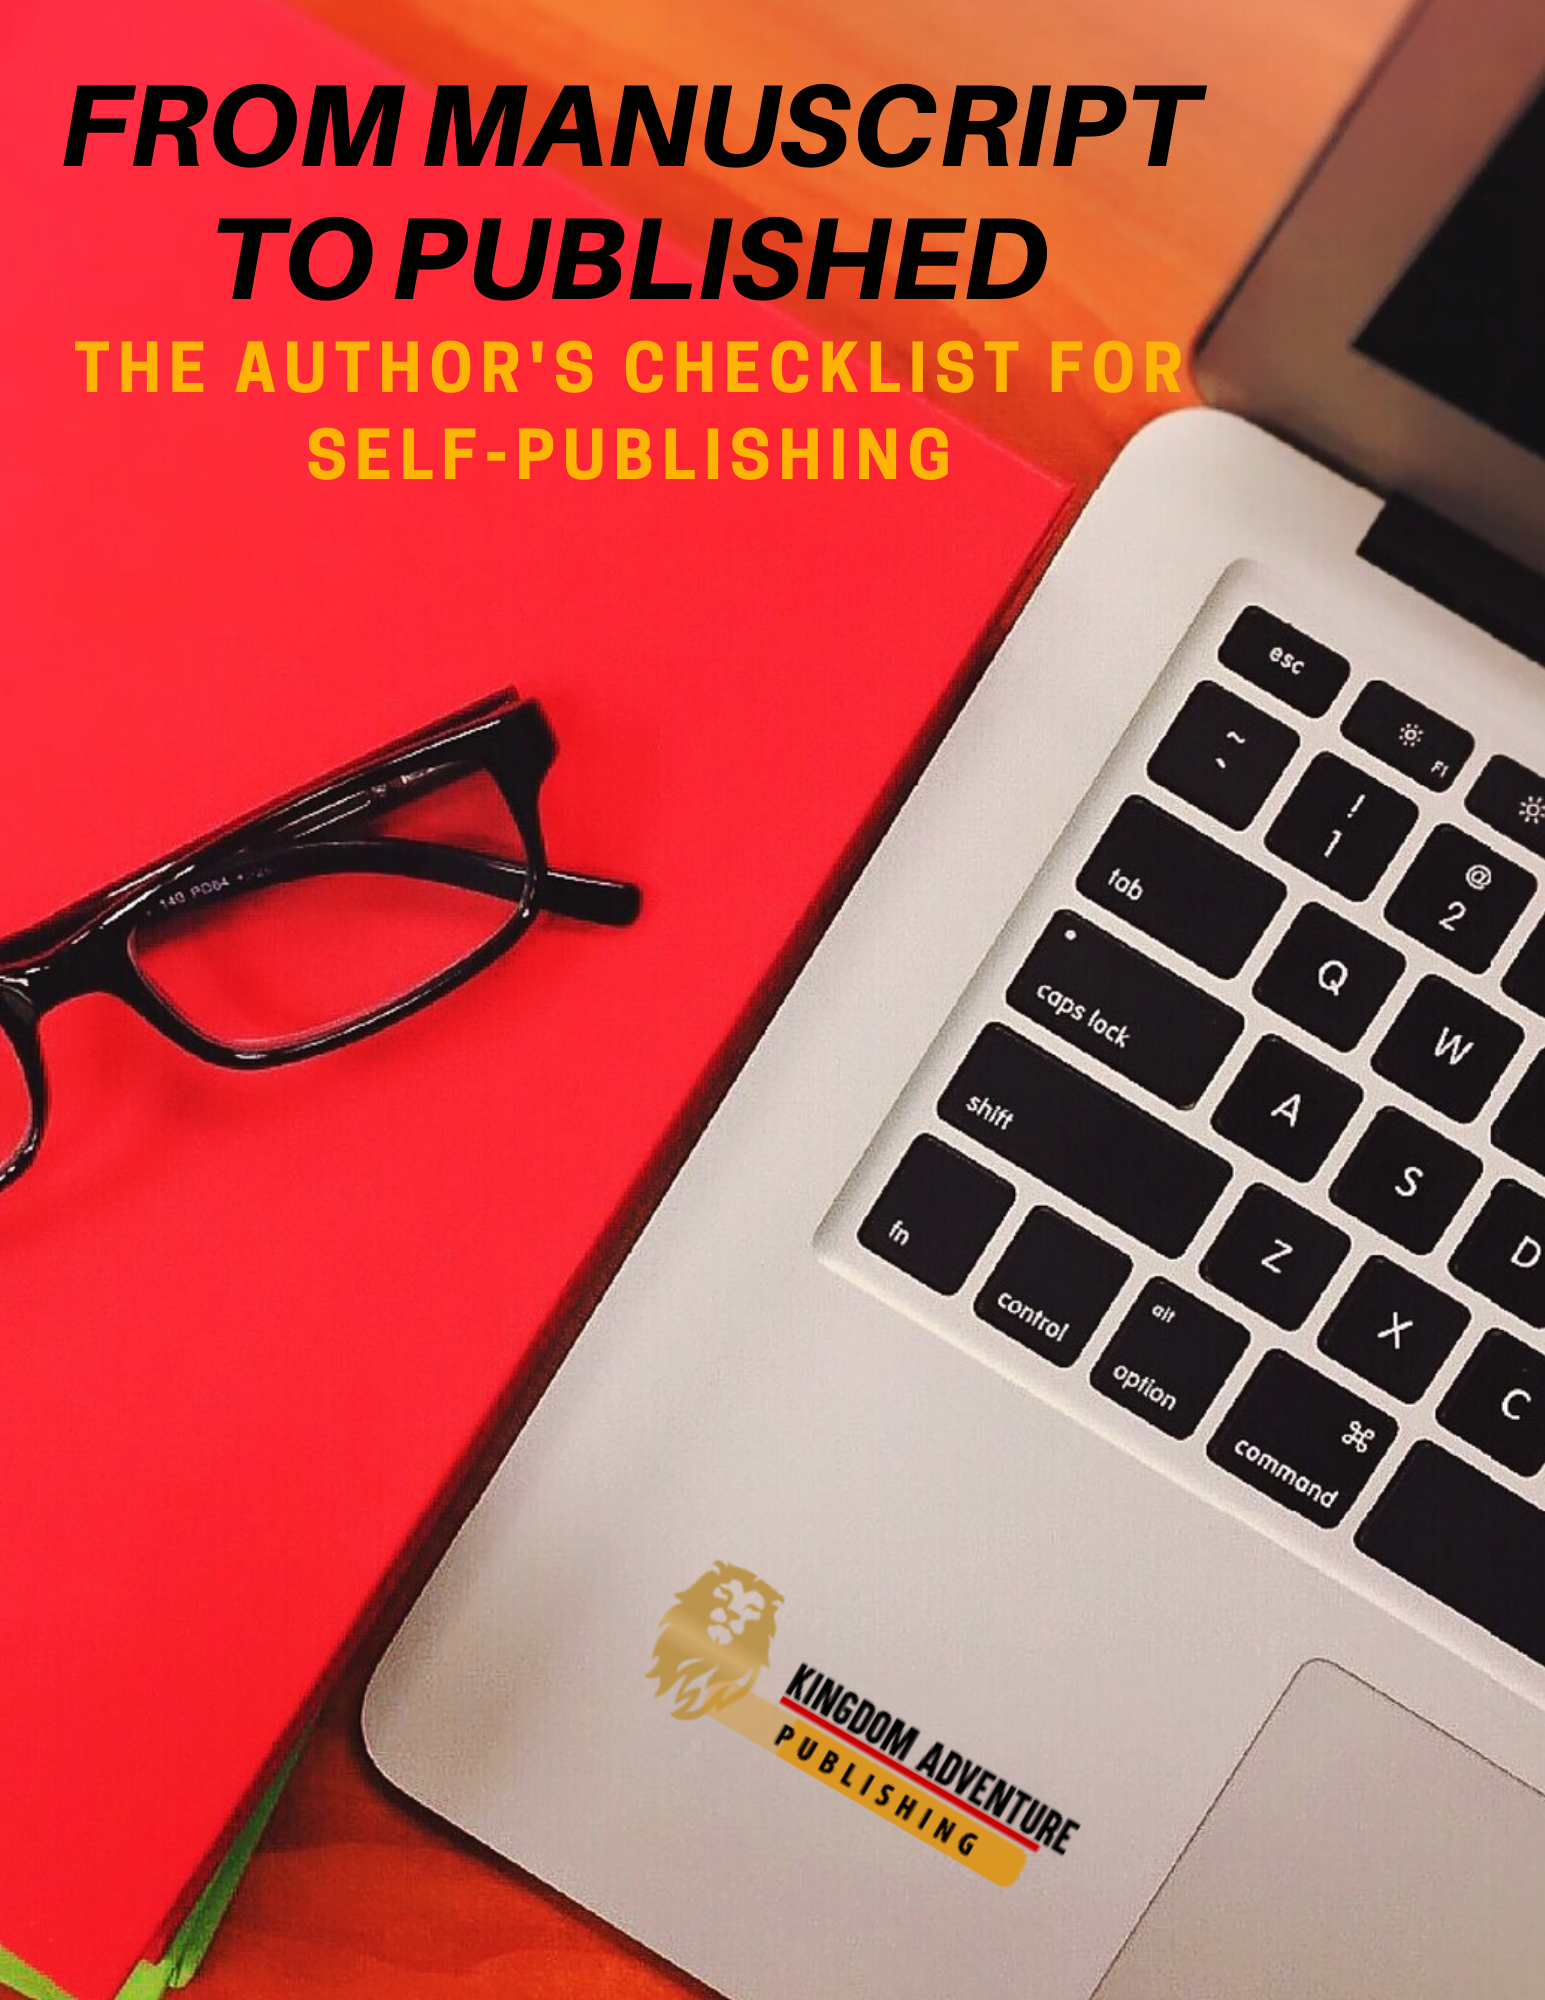 From Manuscript to Published: The Author's Checklist for Self-Publishing